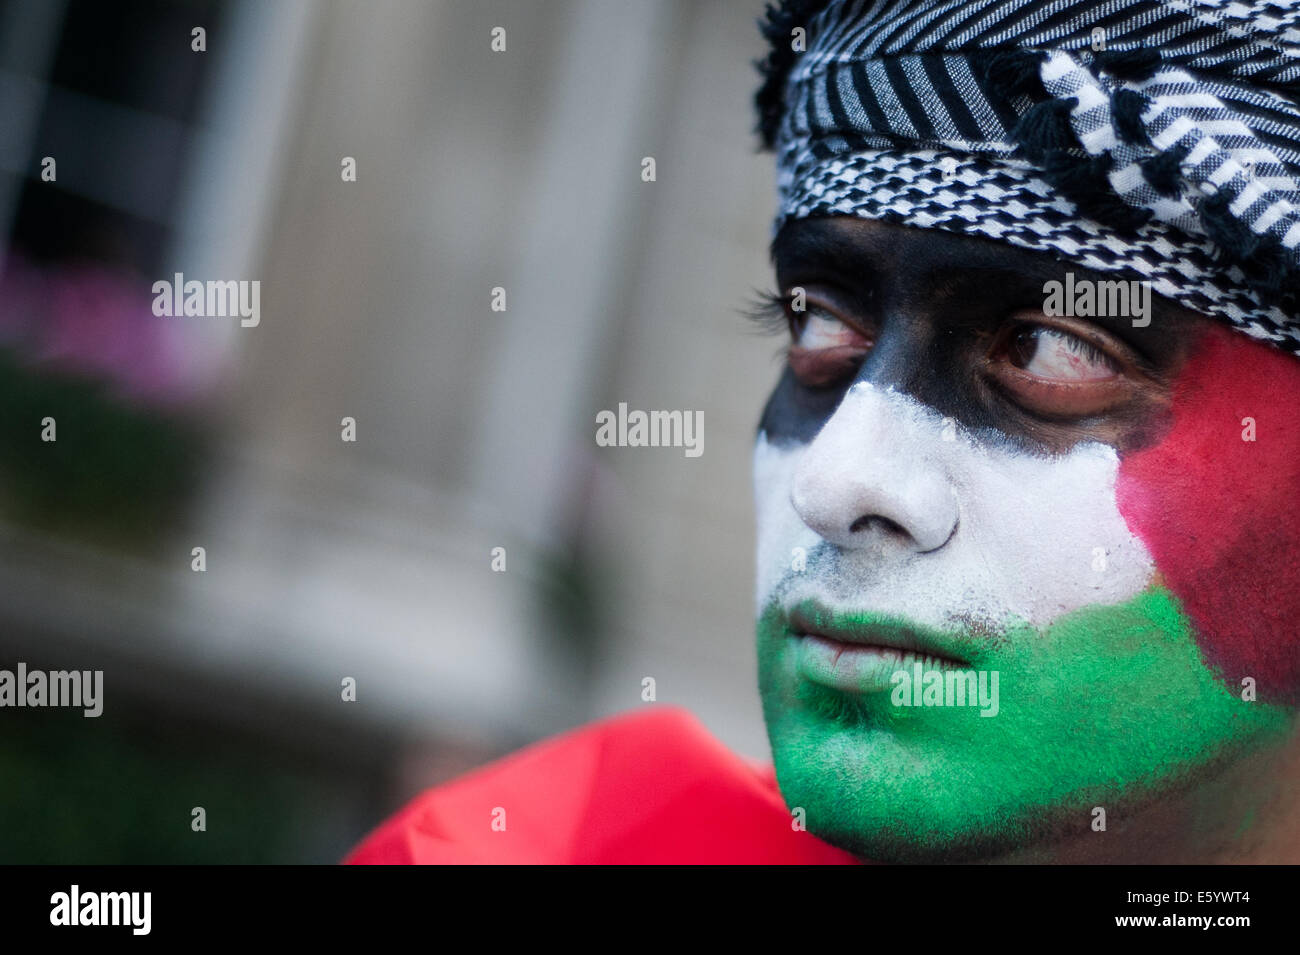 London, UK. 9th August, 2014. A man with a Palestinian flag painted on his face protests in London to call for an - Stock Image